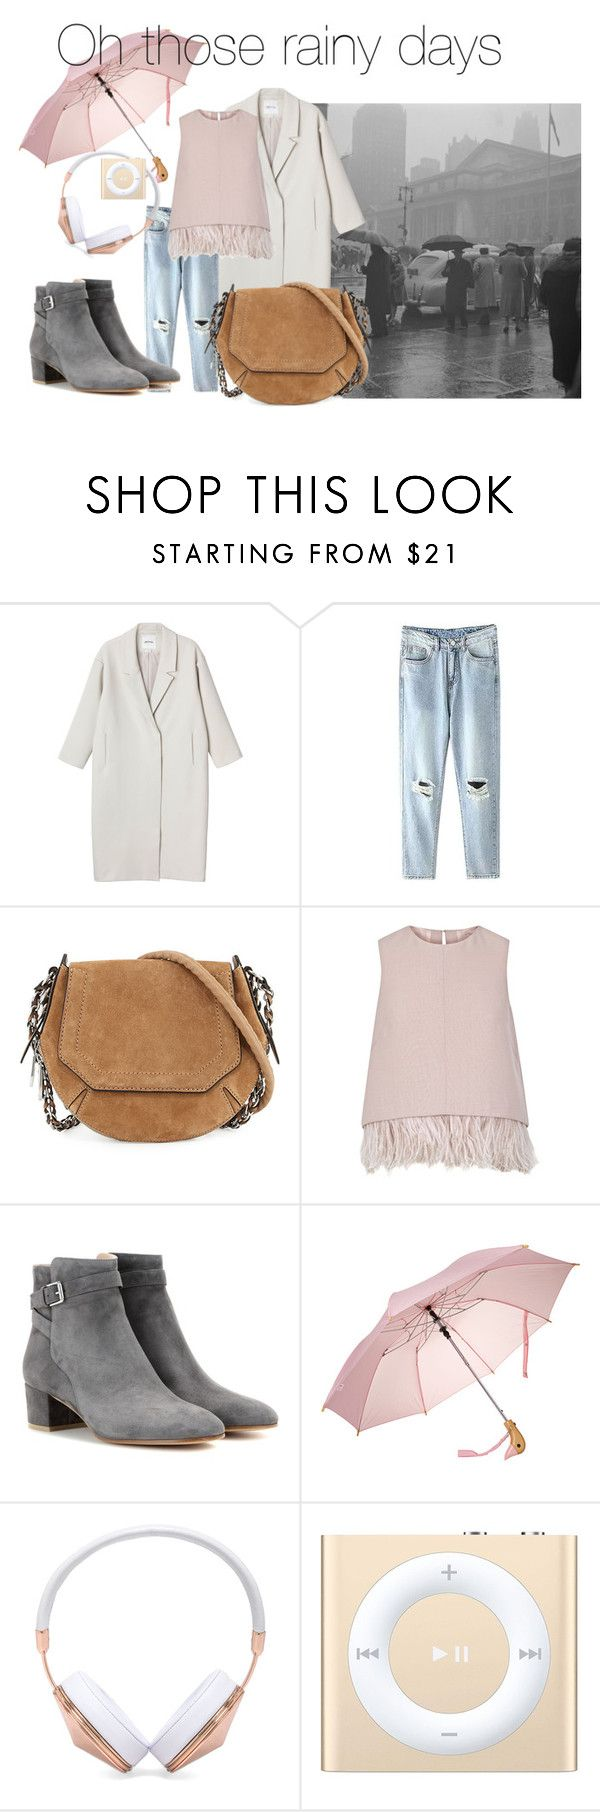 rainy12 by slounis on Polyvore featuring moda, The 2nd Skin Co., Monki, Gianvito Rossi, rag & bone, Frends, Apple, women's clothing, women's fashion and women